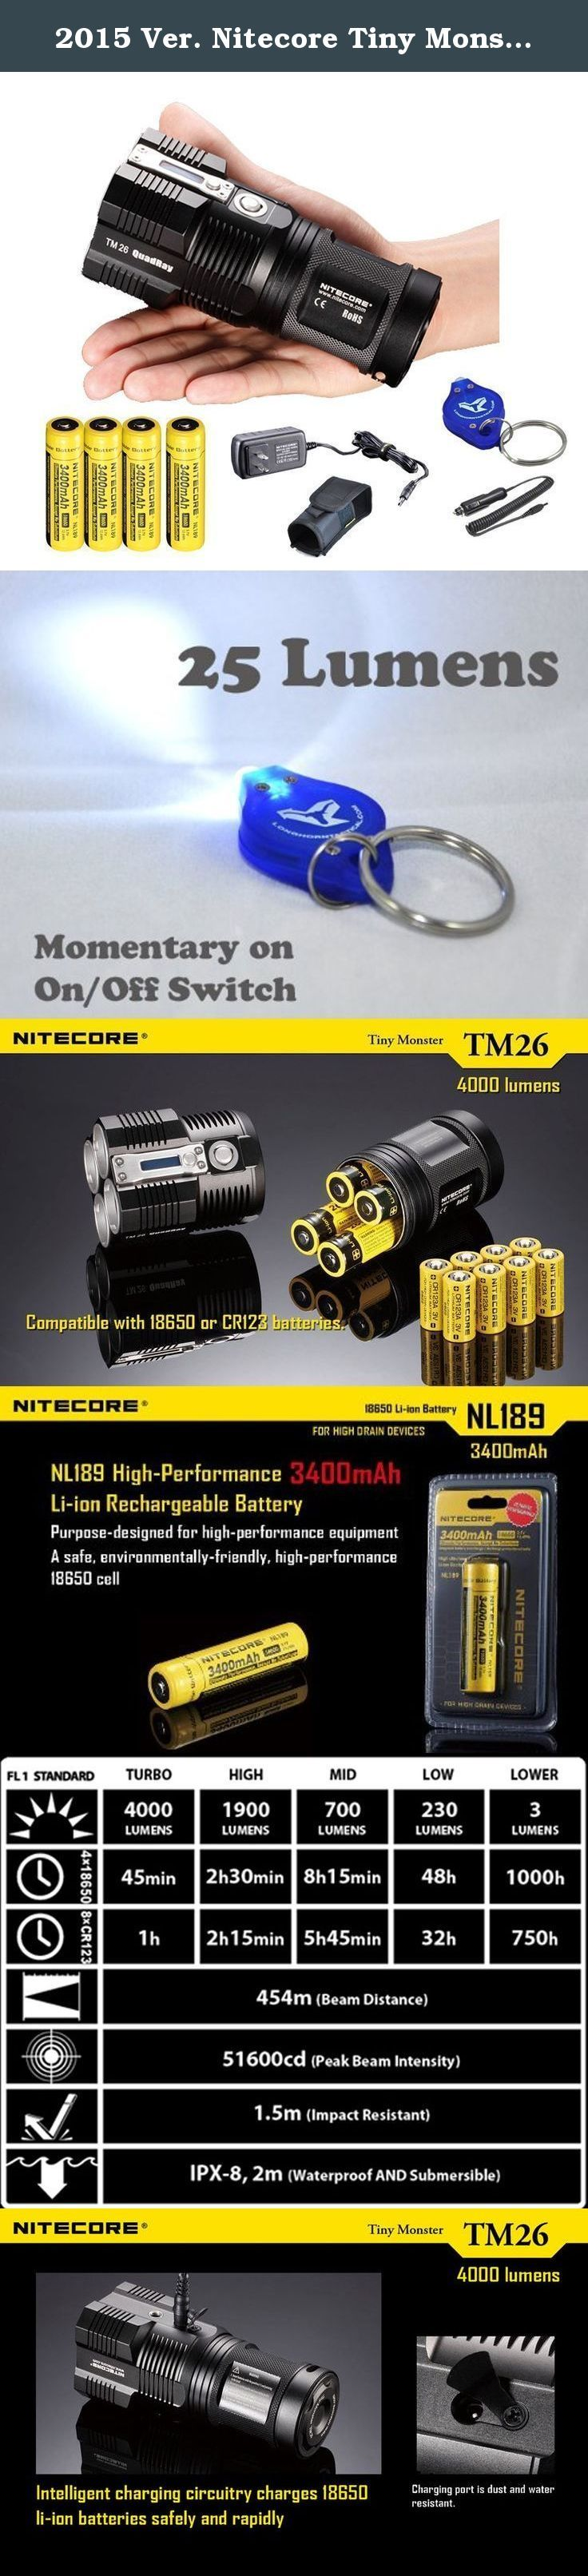 2015 Ver. Nitecore Tiny Monster TM26 4000 Lumen Search Light Ultimate Bundle: 4x Nitecore NL189 3400 mAH 18650 Batteries, Wall and Car Charger, a LumenTac(TM) Keychain Light. The ultimate bundle for the latest Nitecore Tiny Monster TM26 with the latest 4x Nitecore NL189 high capacity high performance rechargeable 18650 batteries, a A/C charger, a car adapter and a light locator. With this bundle, TM26 will be at its optimal performance all the time. Whats more, this is the newest 4000…